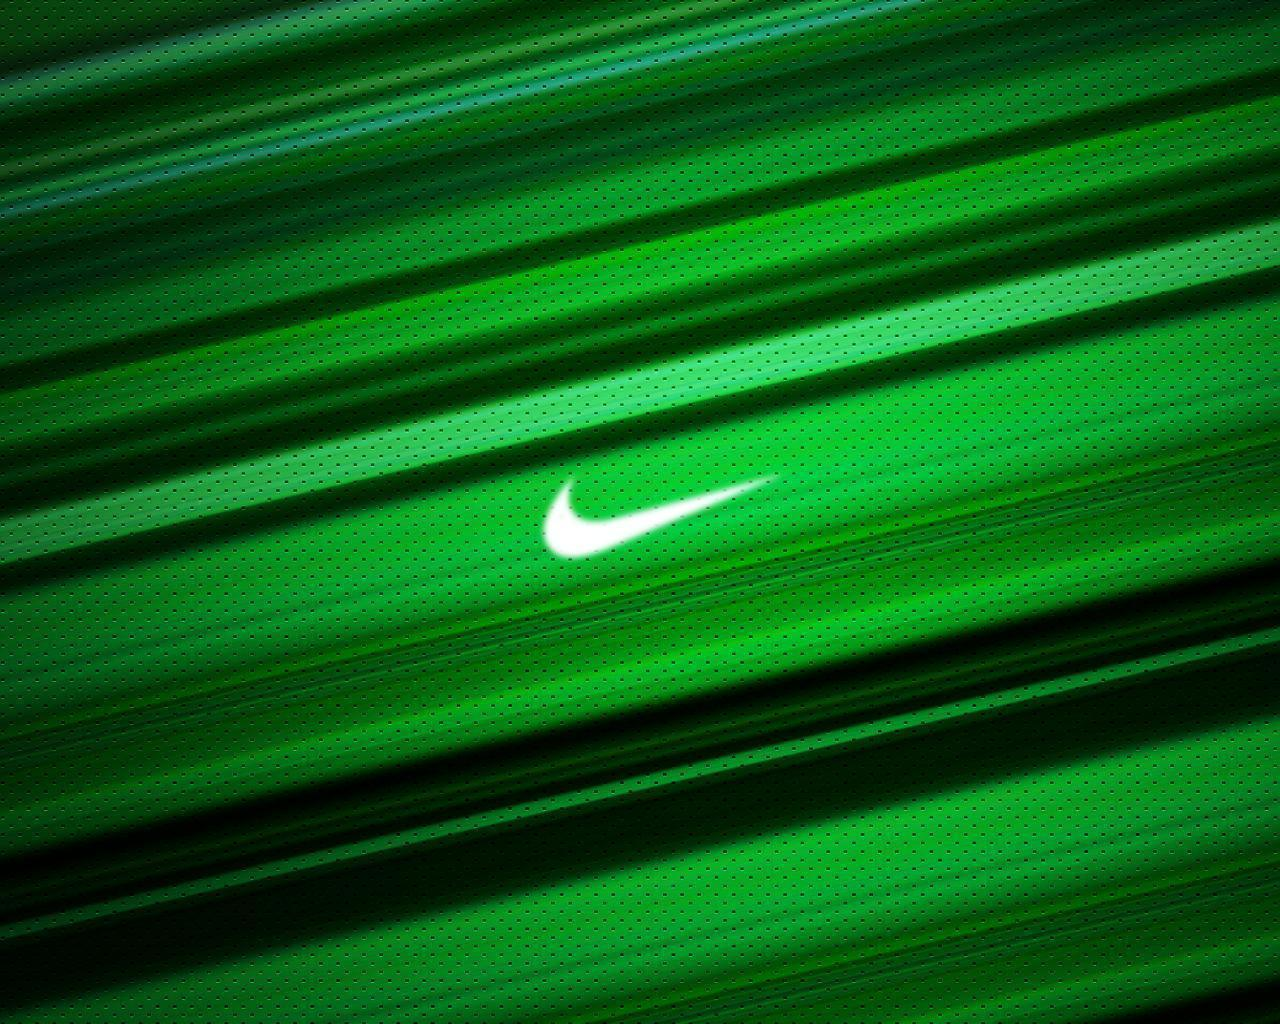 Nike Wallpaper: Cool Nike Backgrounds